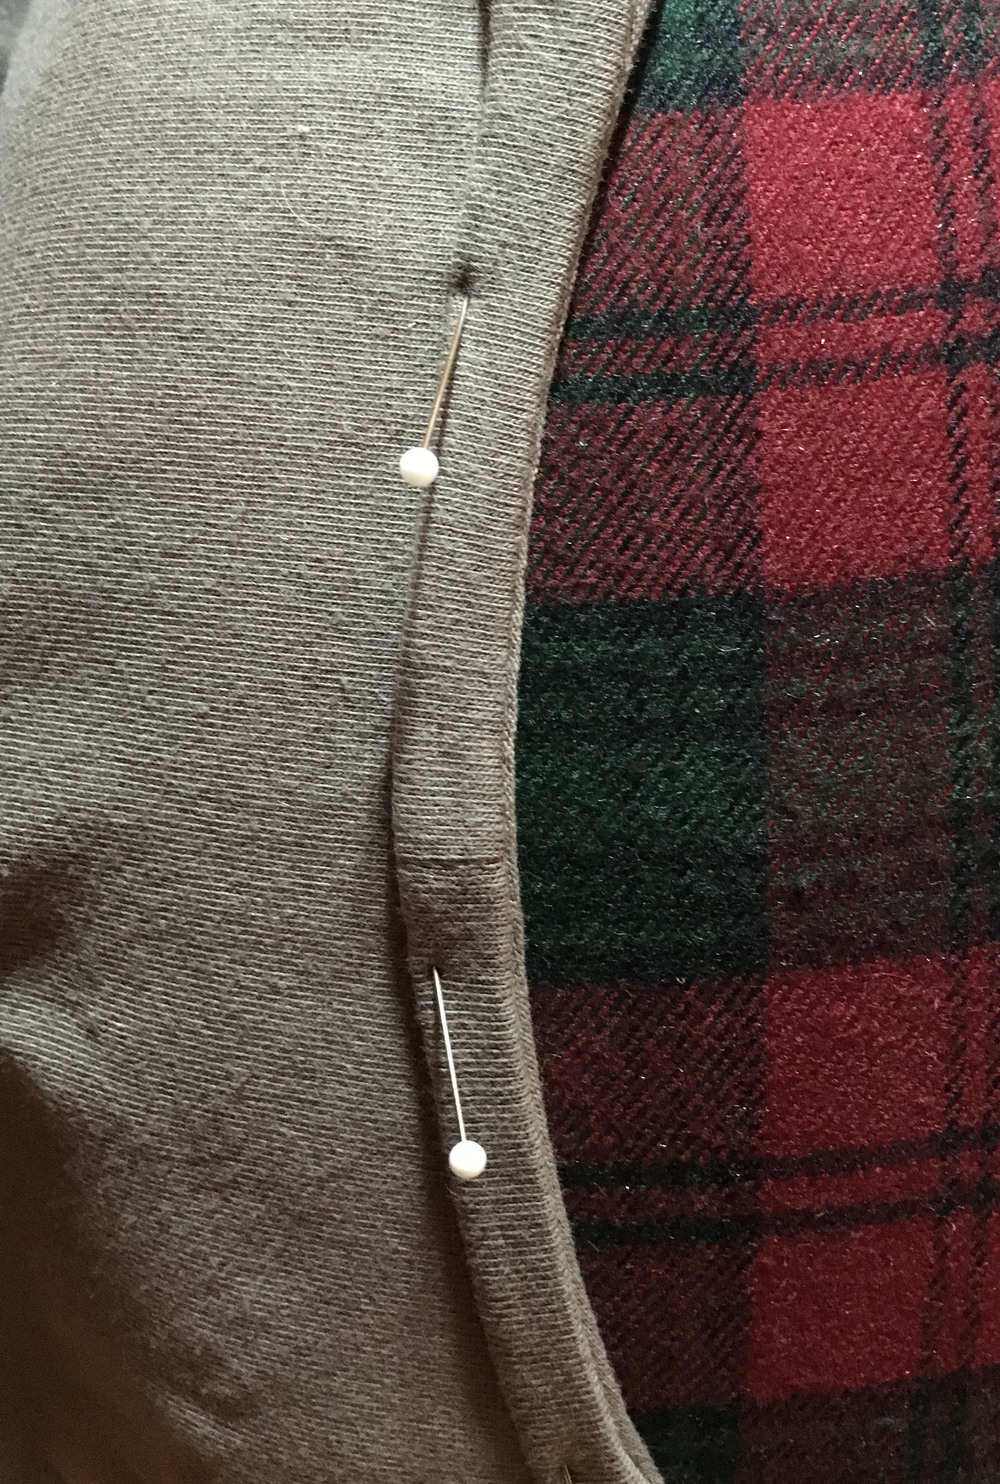 Unfinished edge of facing strip gets turned under seam allowances on right side of garment.